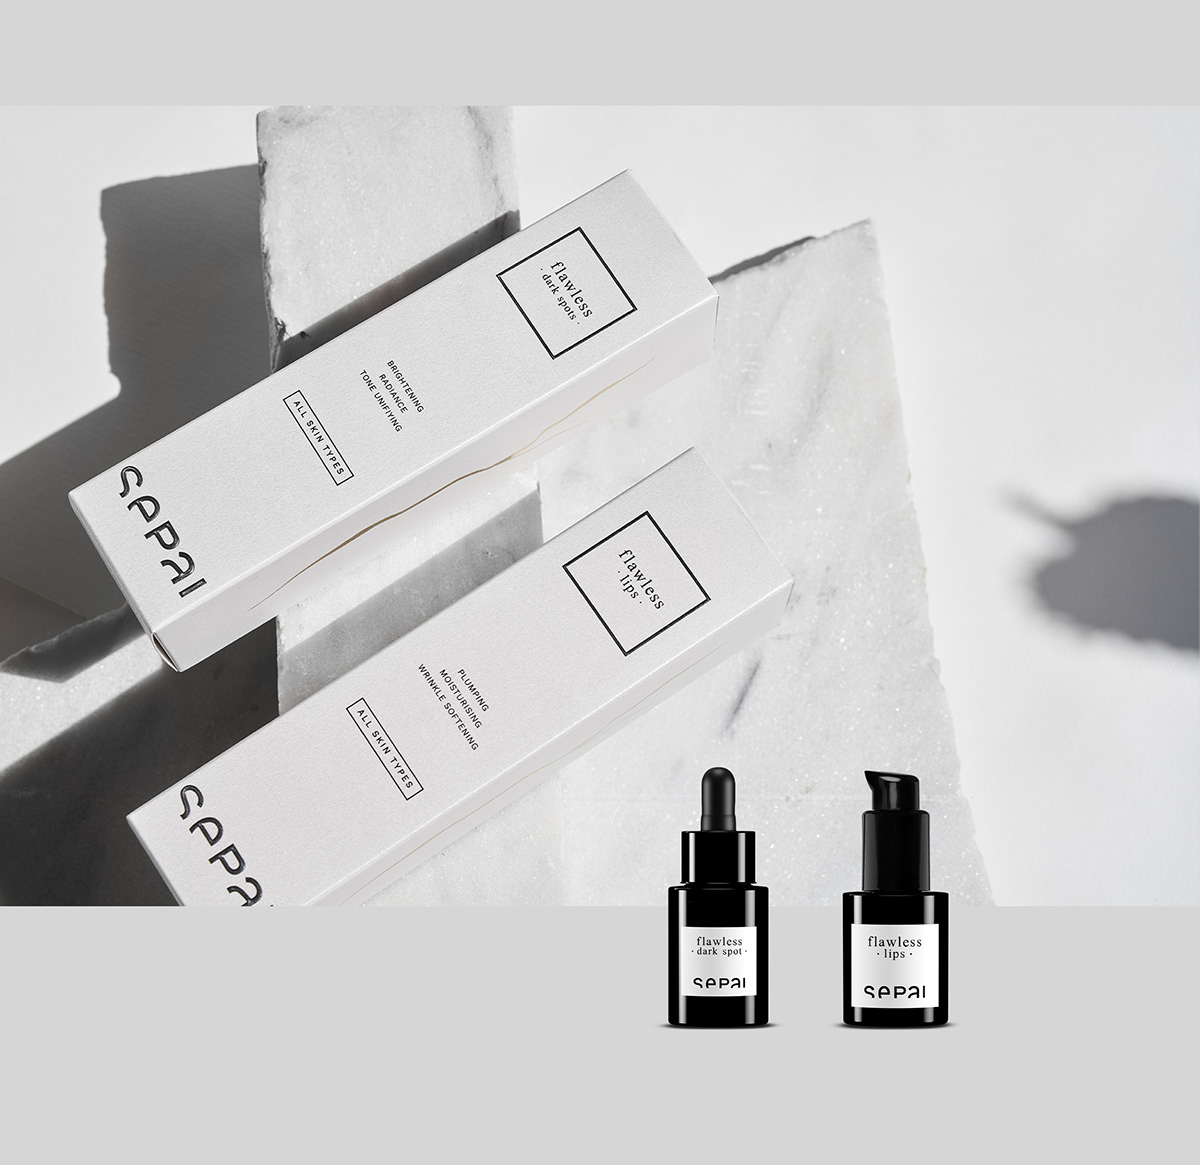 brand branding  Cosmetic design graphic design  luxury minimal Packaging Photography  product